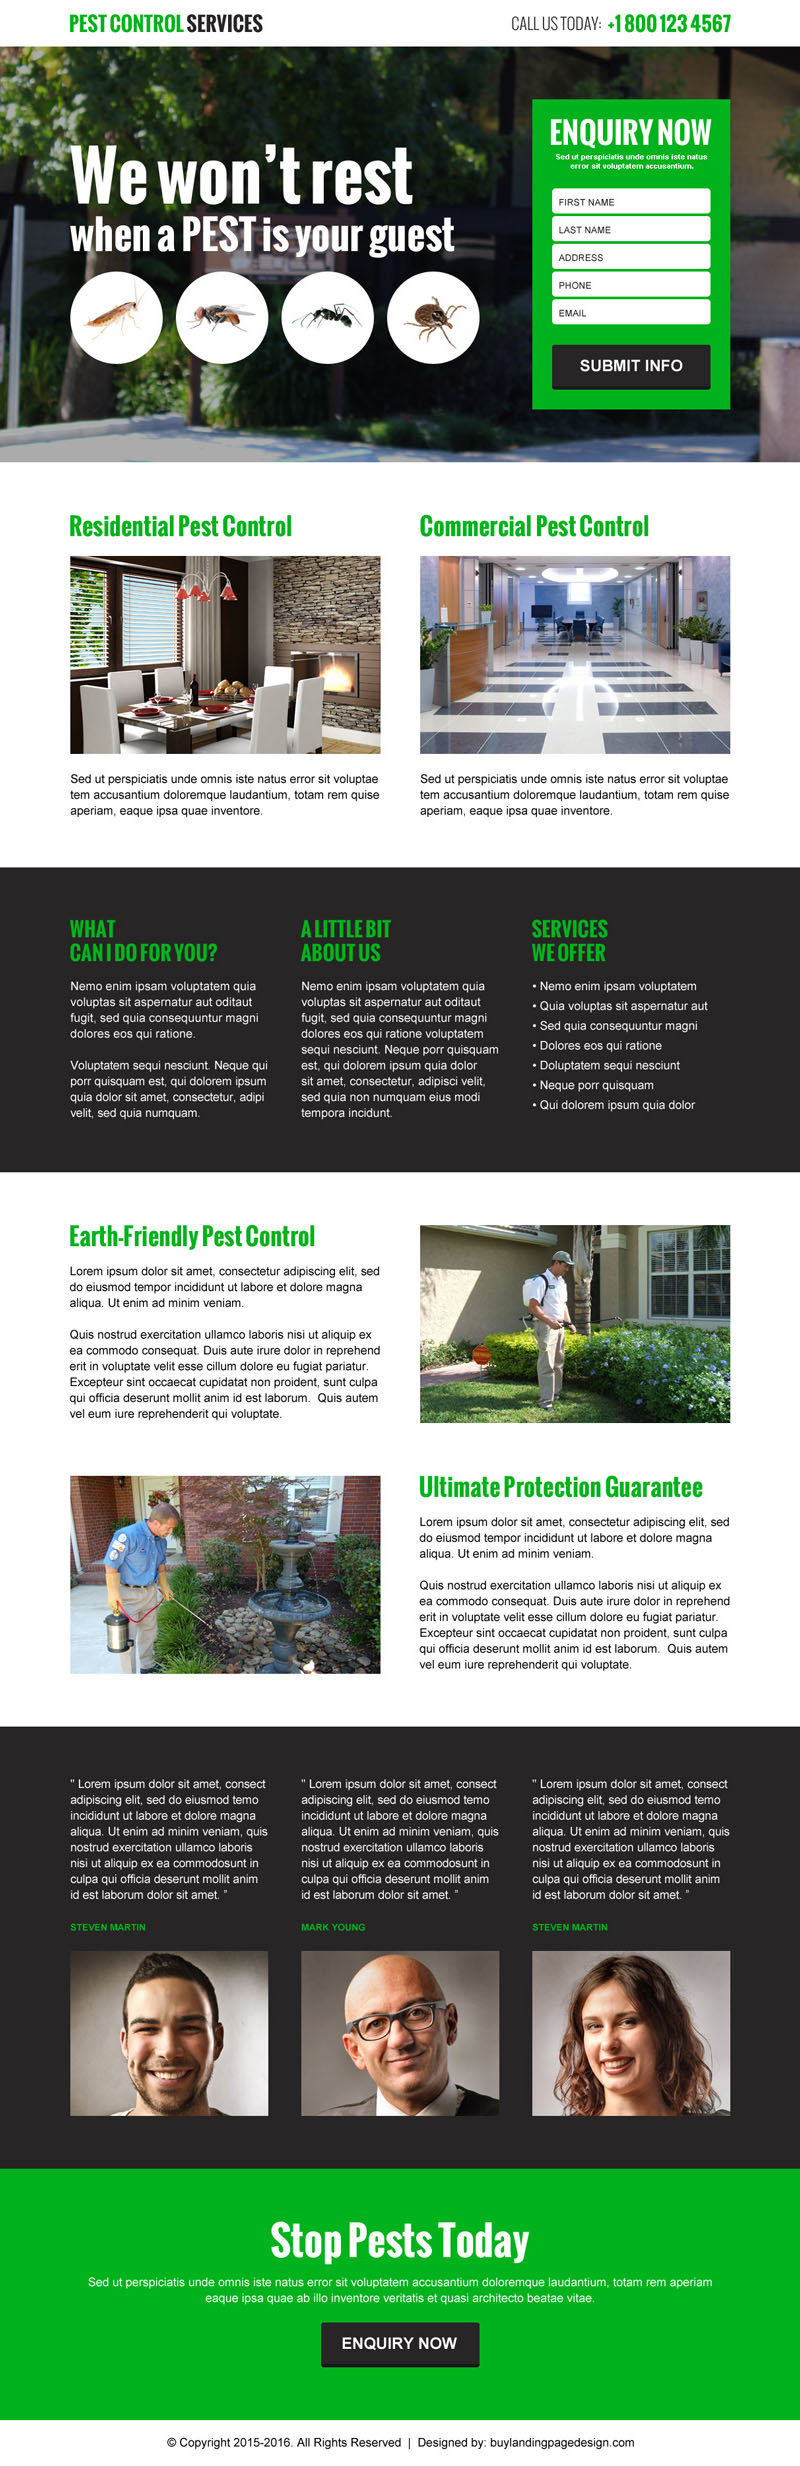 pest-control-services-lead-generation-converting-responsive-landing-page-design-001